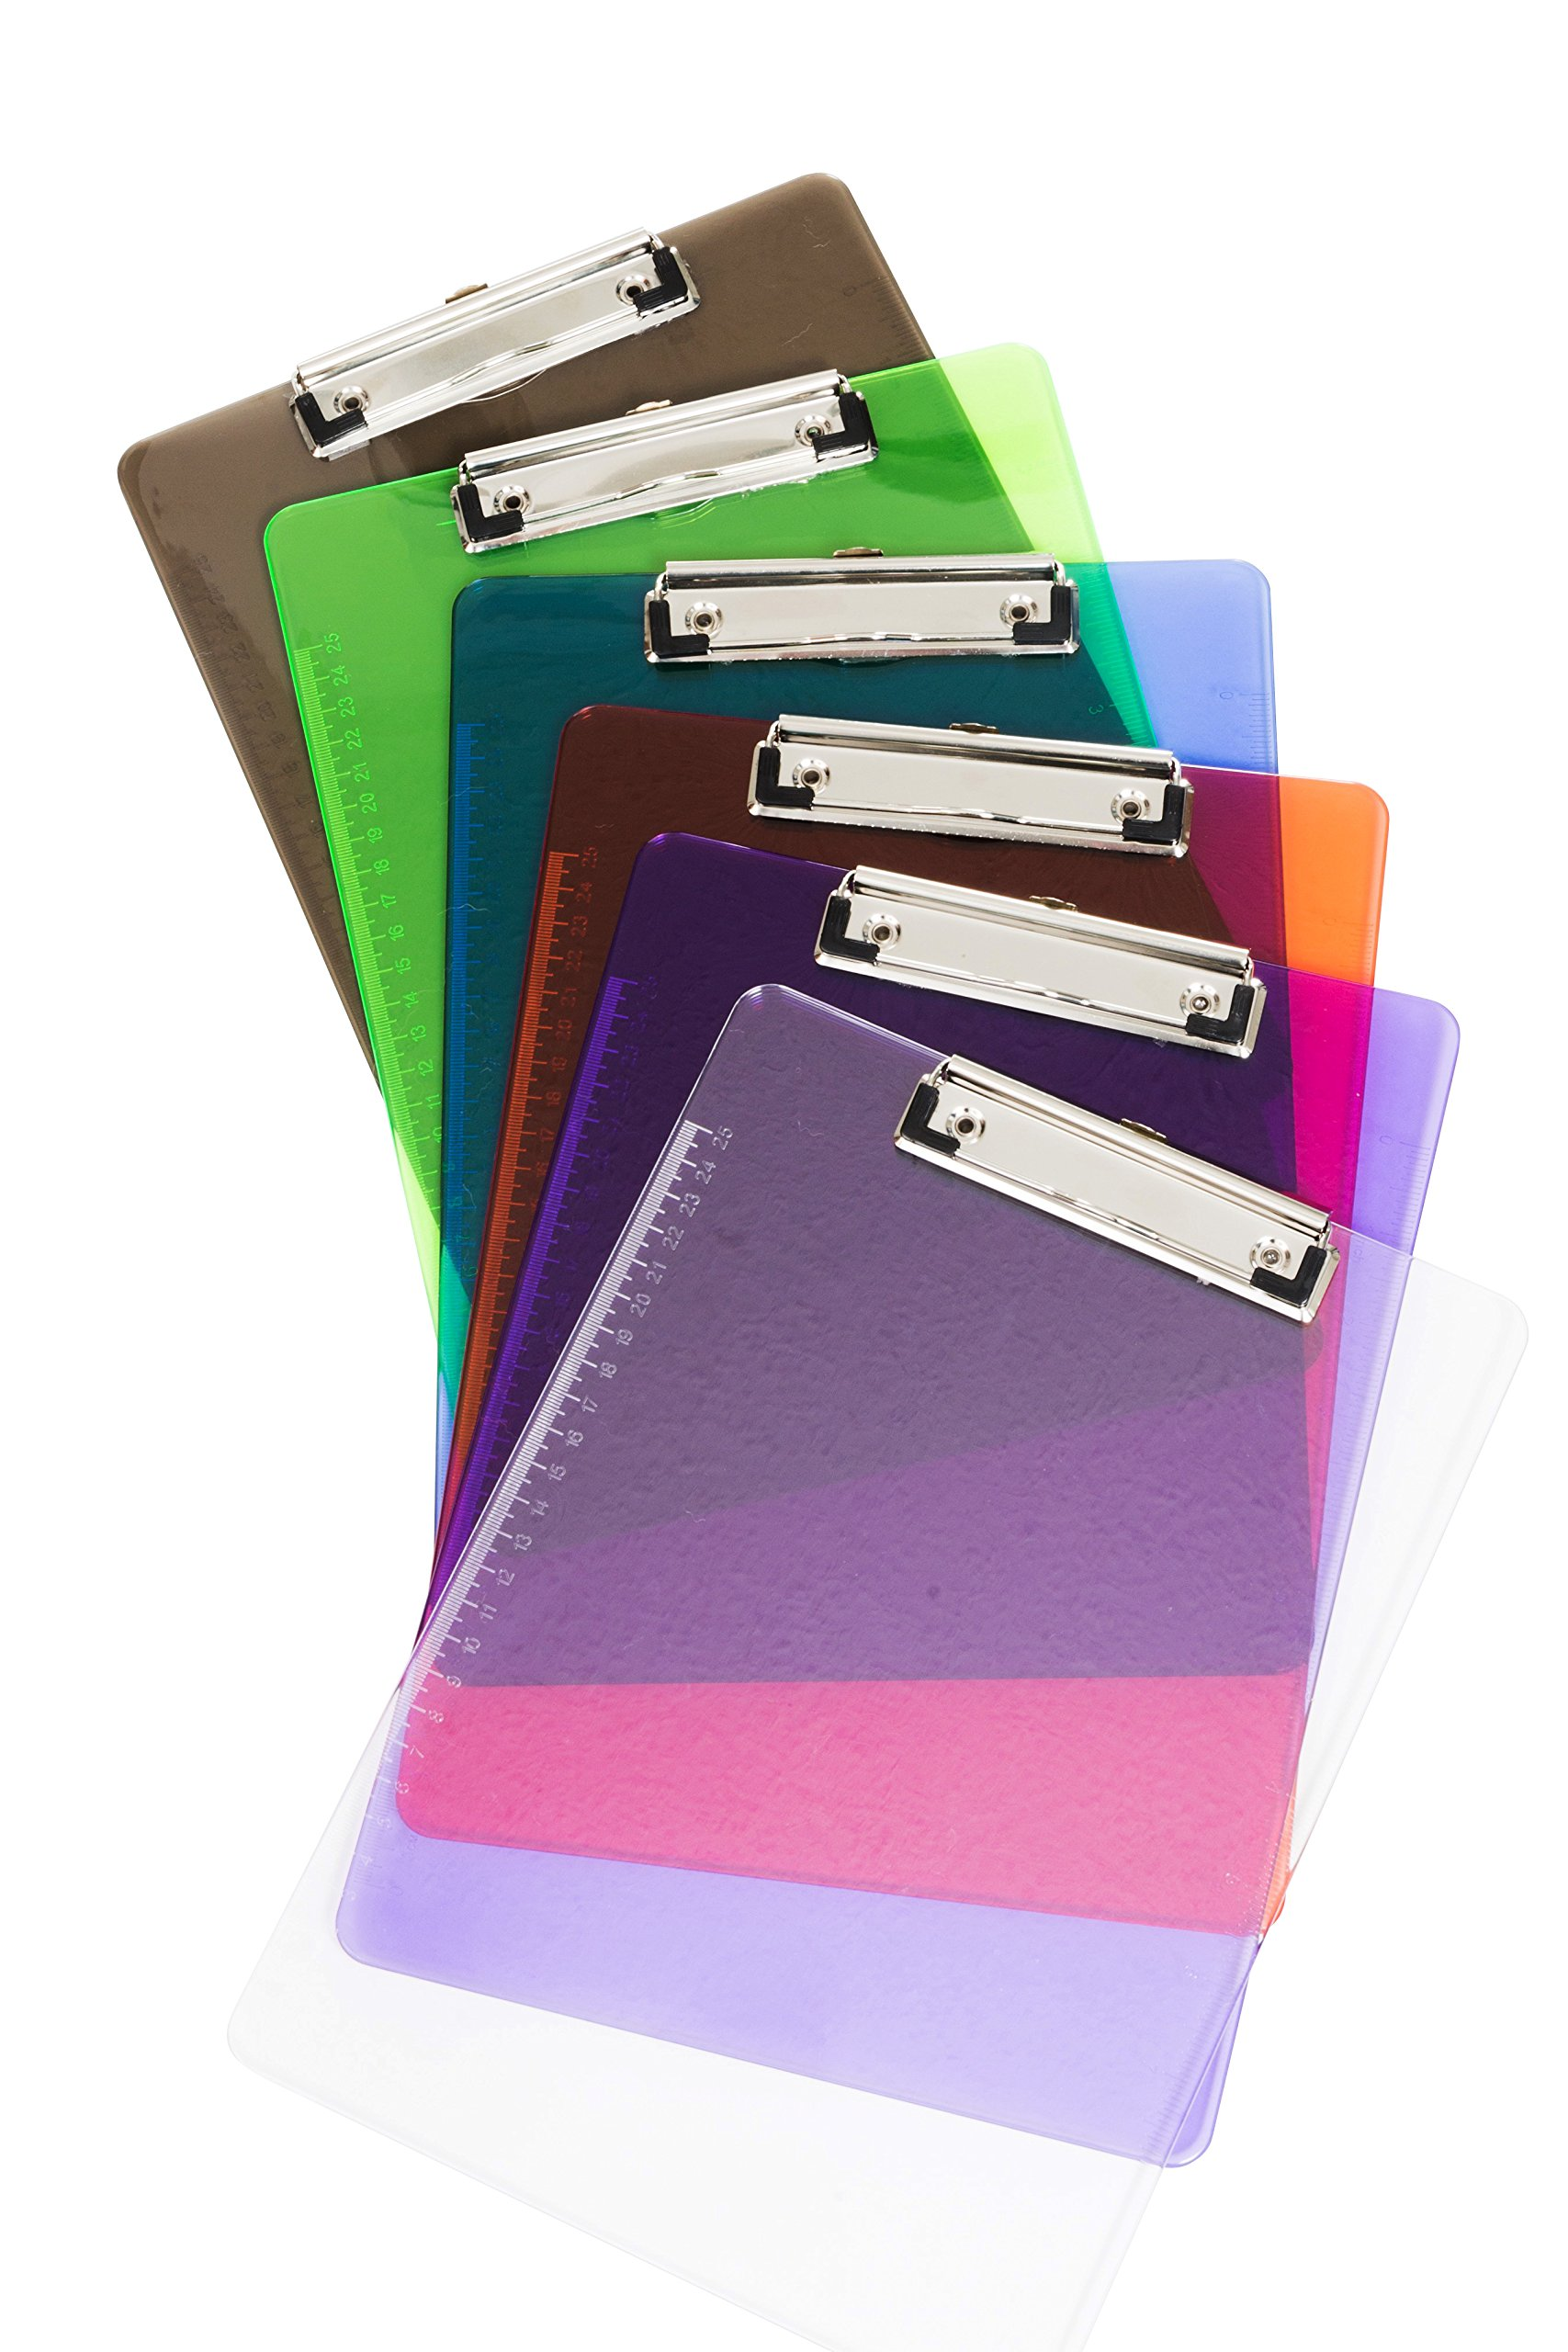 6 Pack Assorted Transparent Color Plastic Clipboards, Low Profile Clip, Clipboards for classrooms, offices, restaurants, doctor offices, 6 Plastic Clipboard Pack